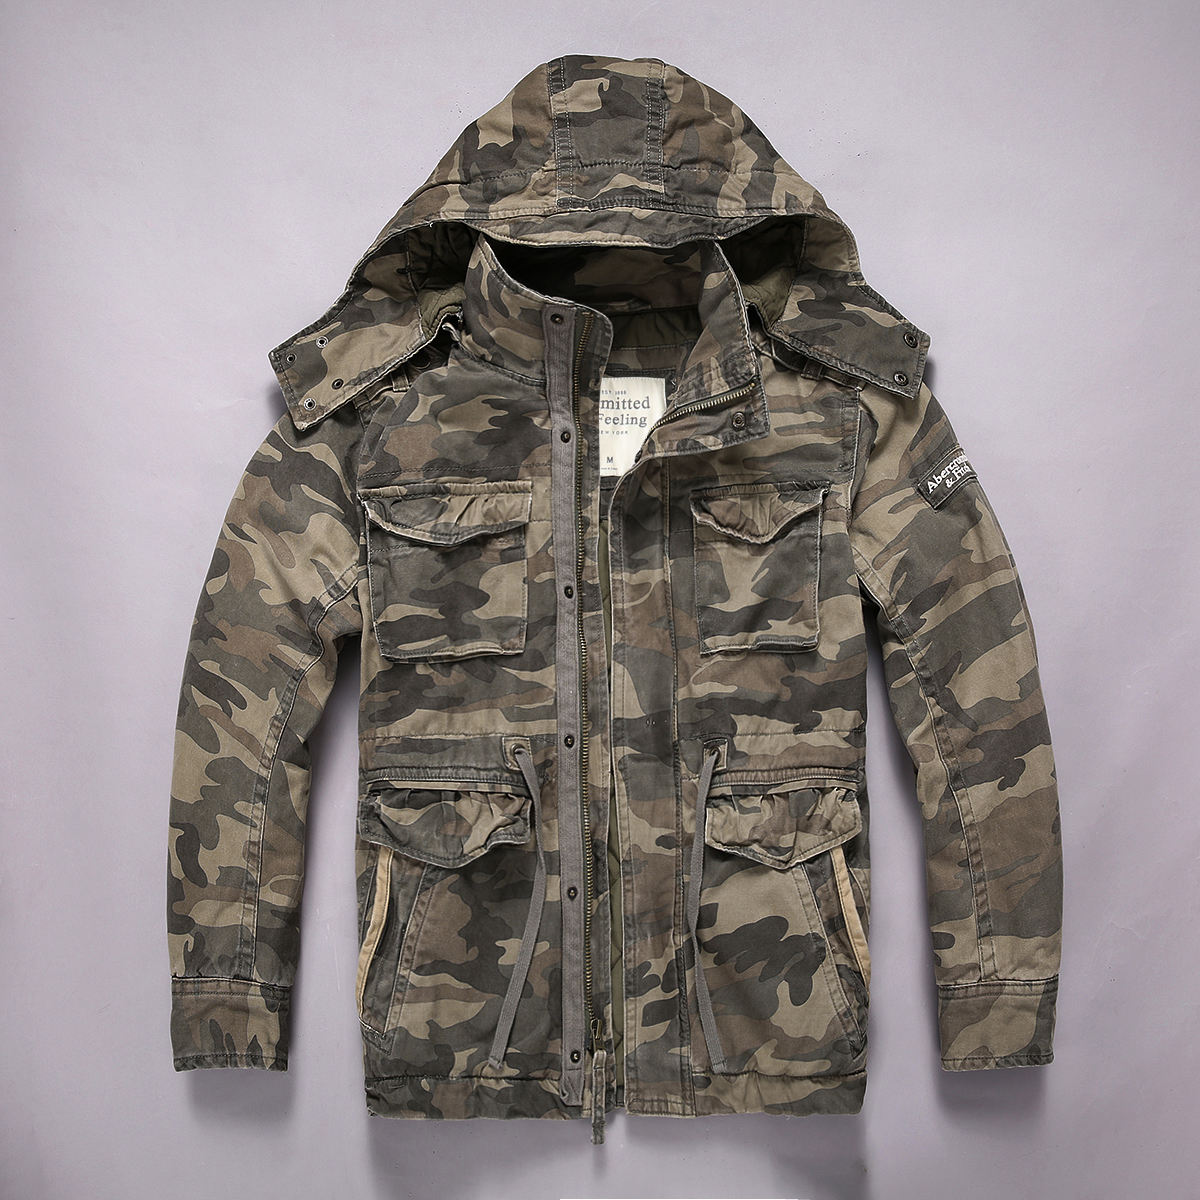 Outdoor 100% Cotton Casual Camouflage Cargo Wash Water Lengthen Coat Jacket